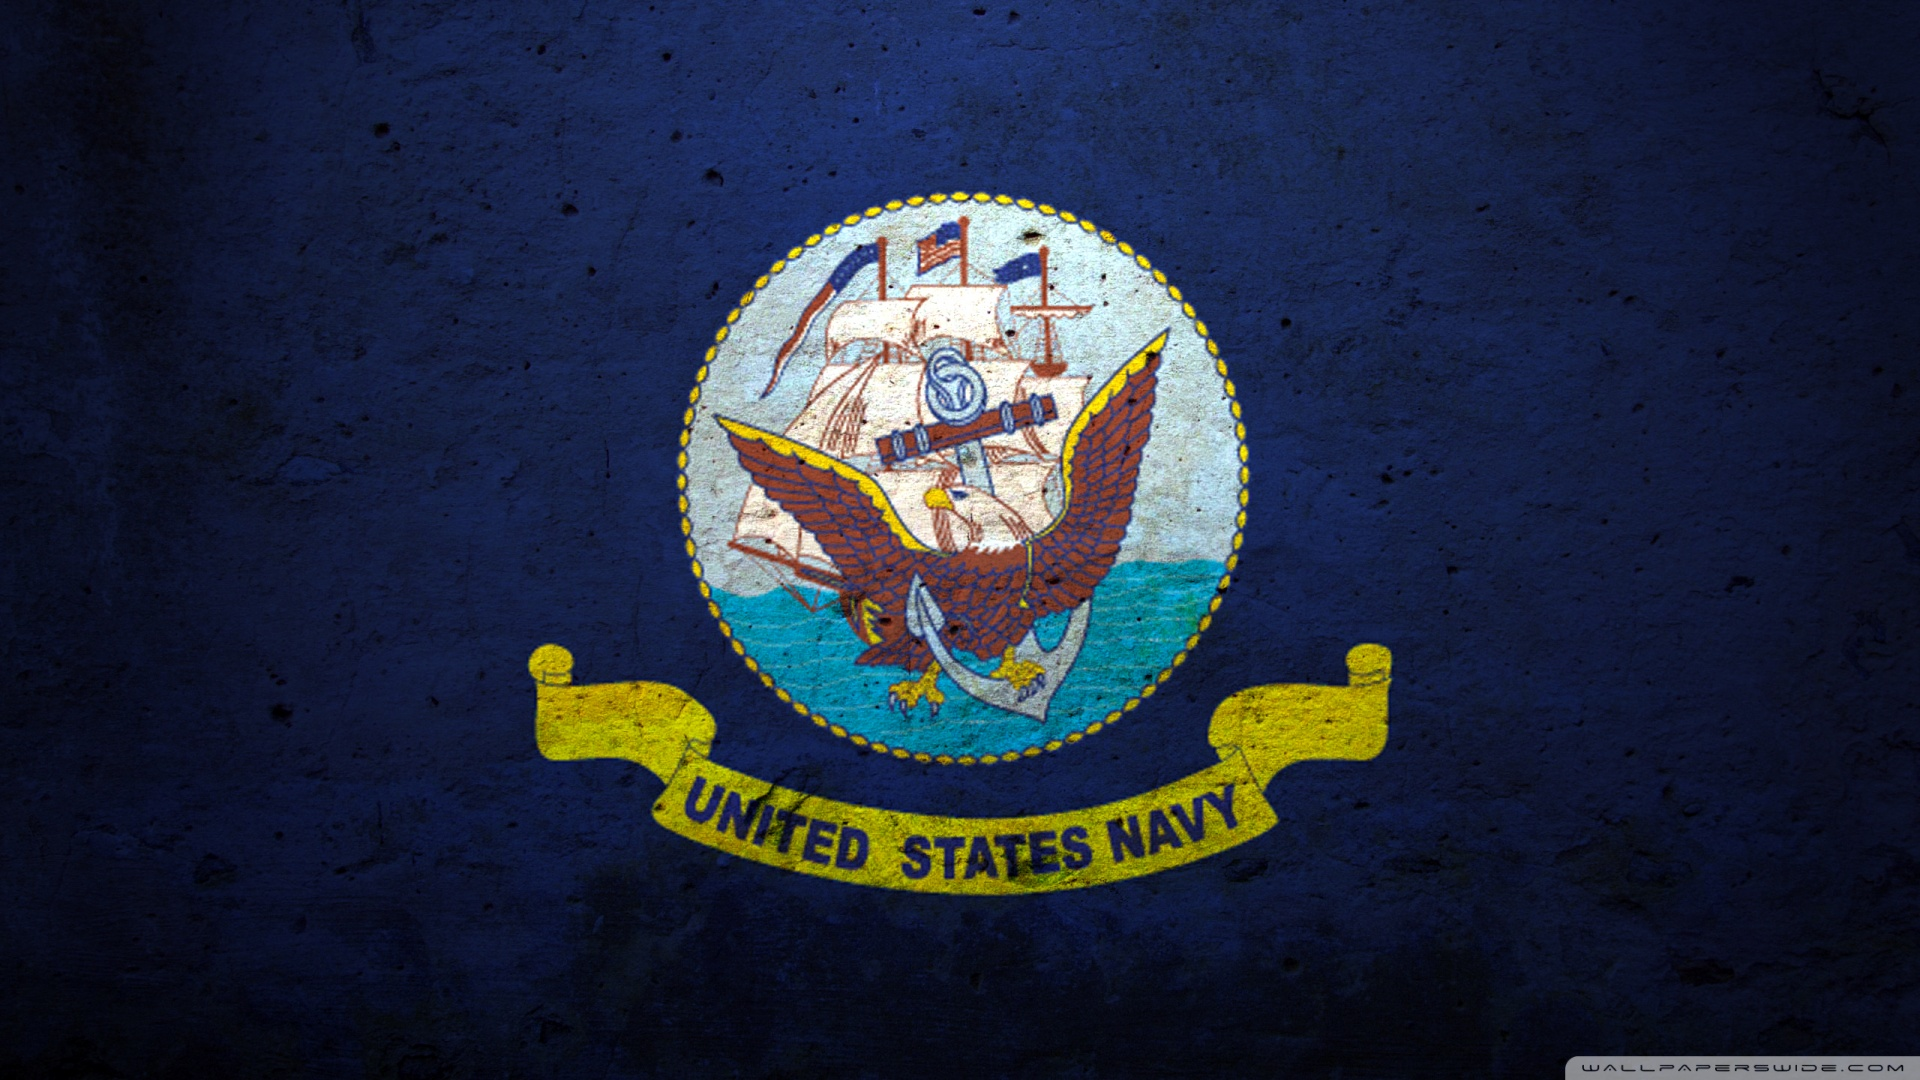 United States Navy Wallpaper 1920x1080 Flag Of The United States 1920x1080